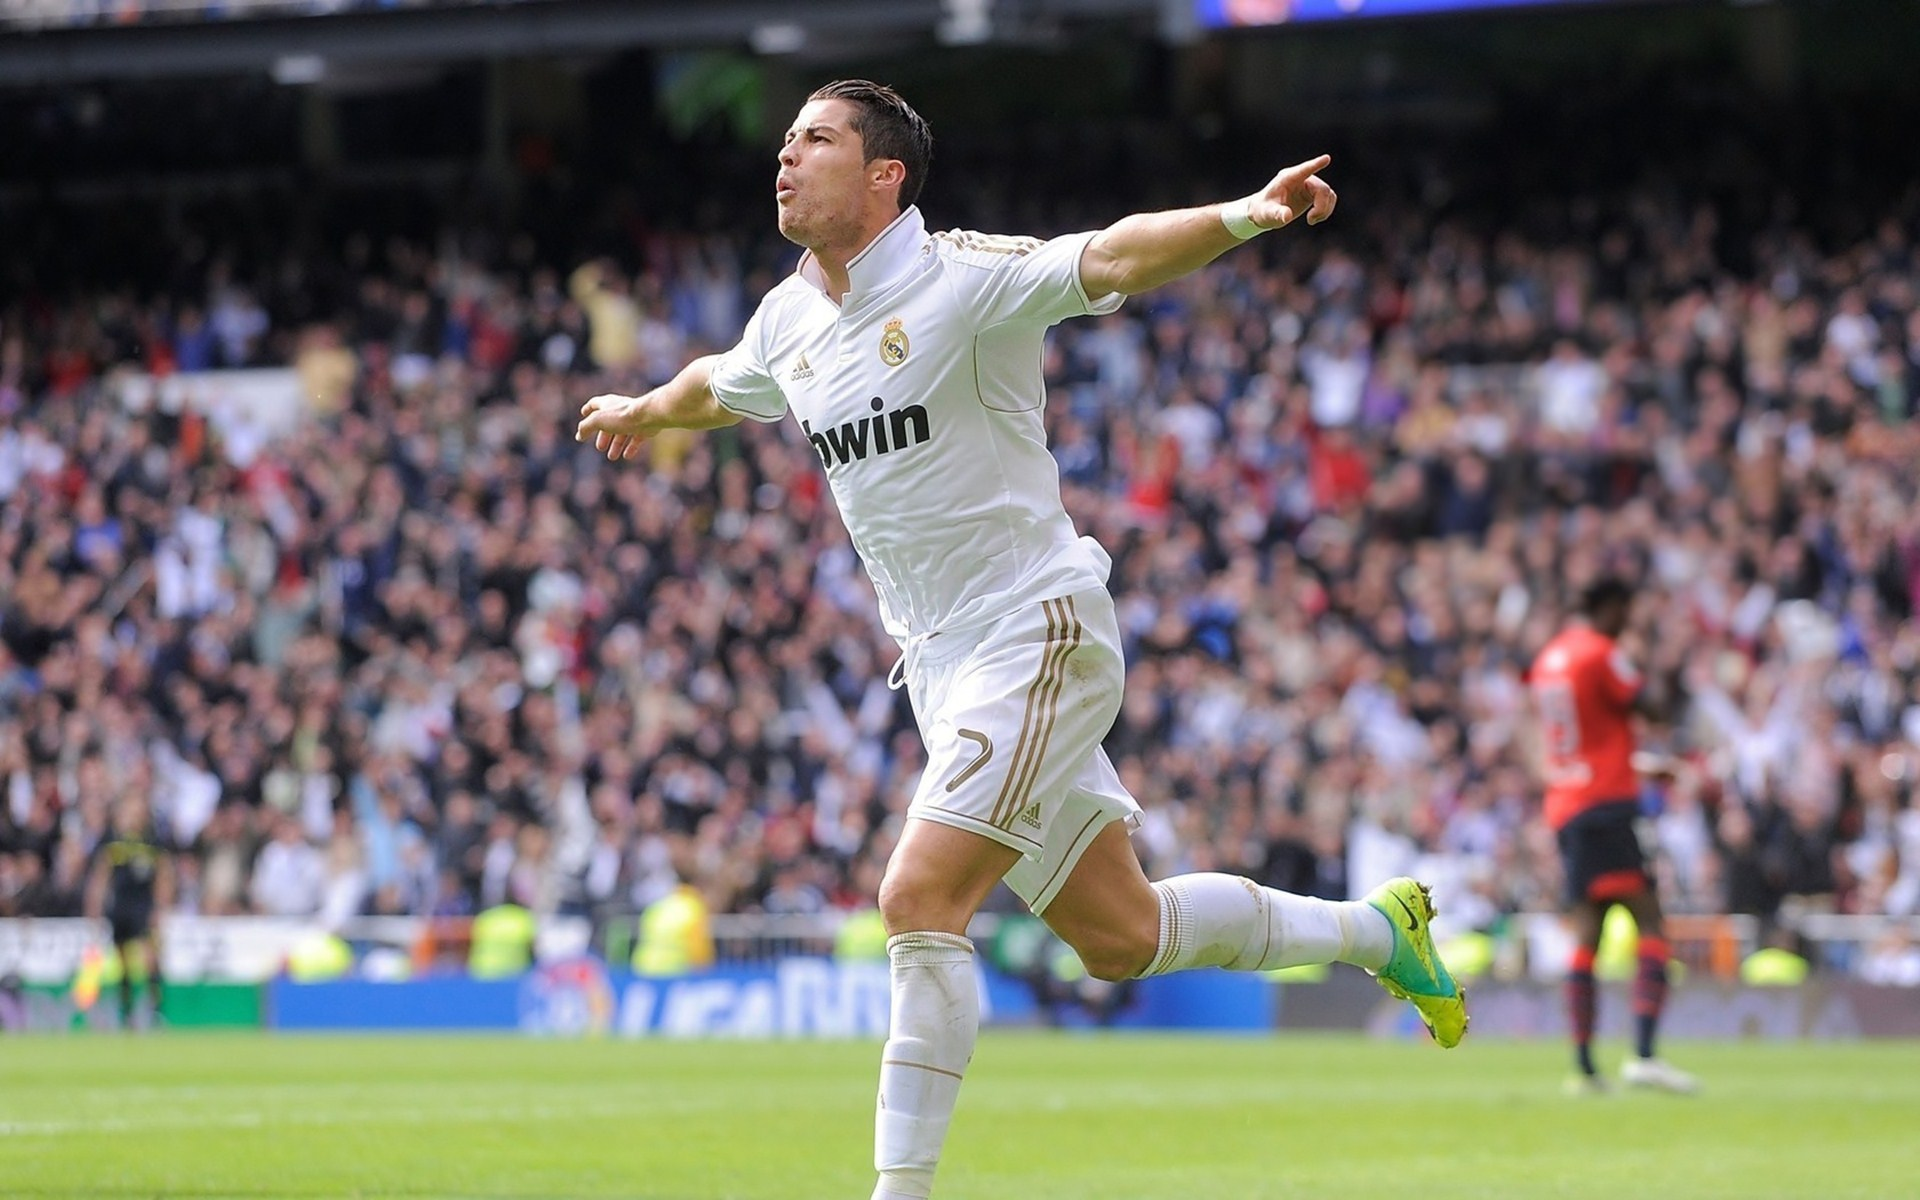 Football Cristiano Ronaldo Hd Wallpapers: Ronaldo Wallpapers, Pictures, Images